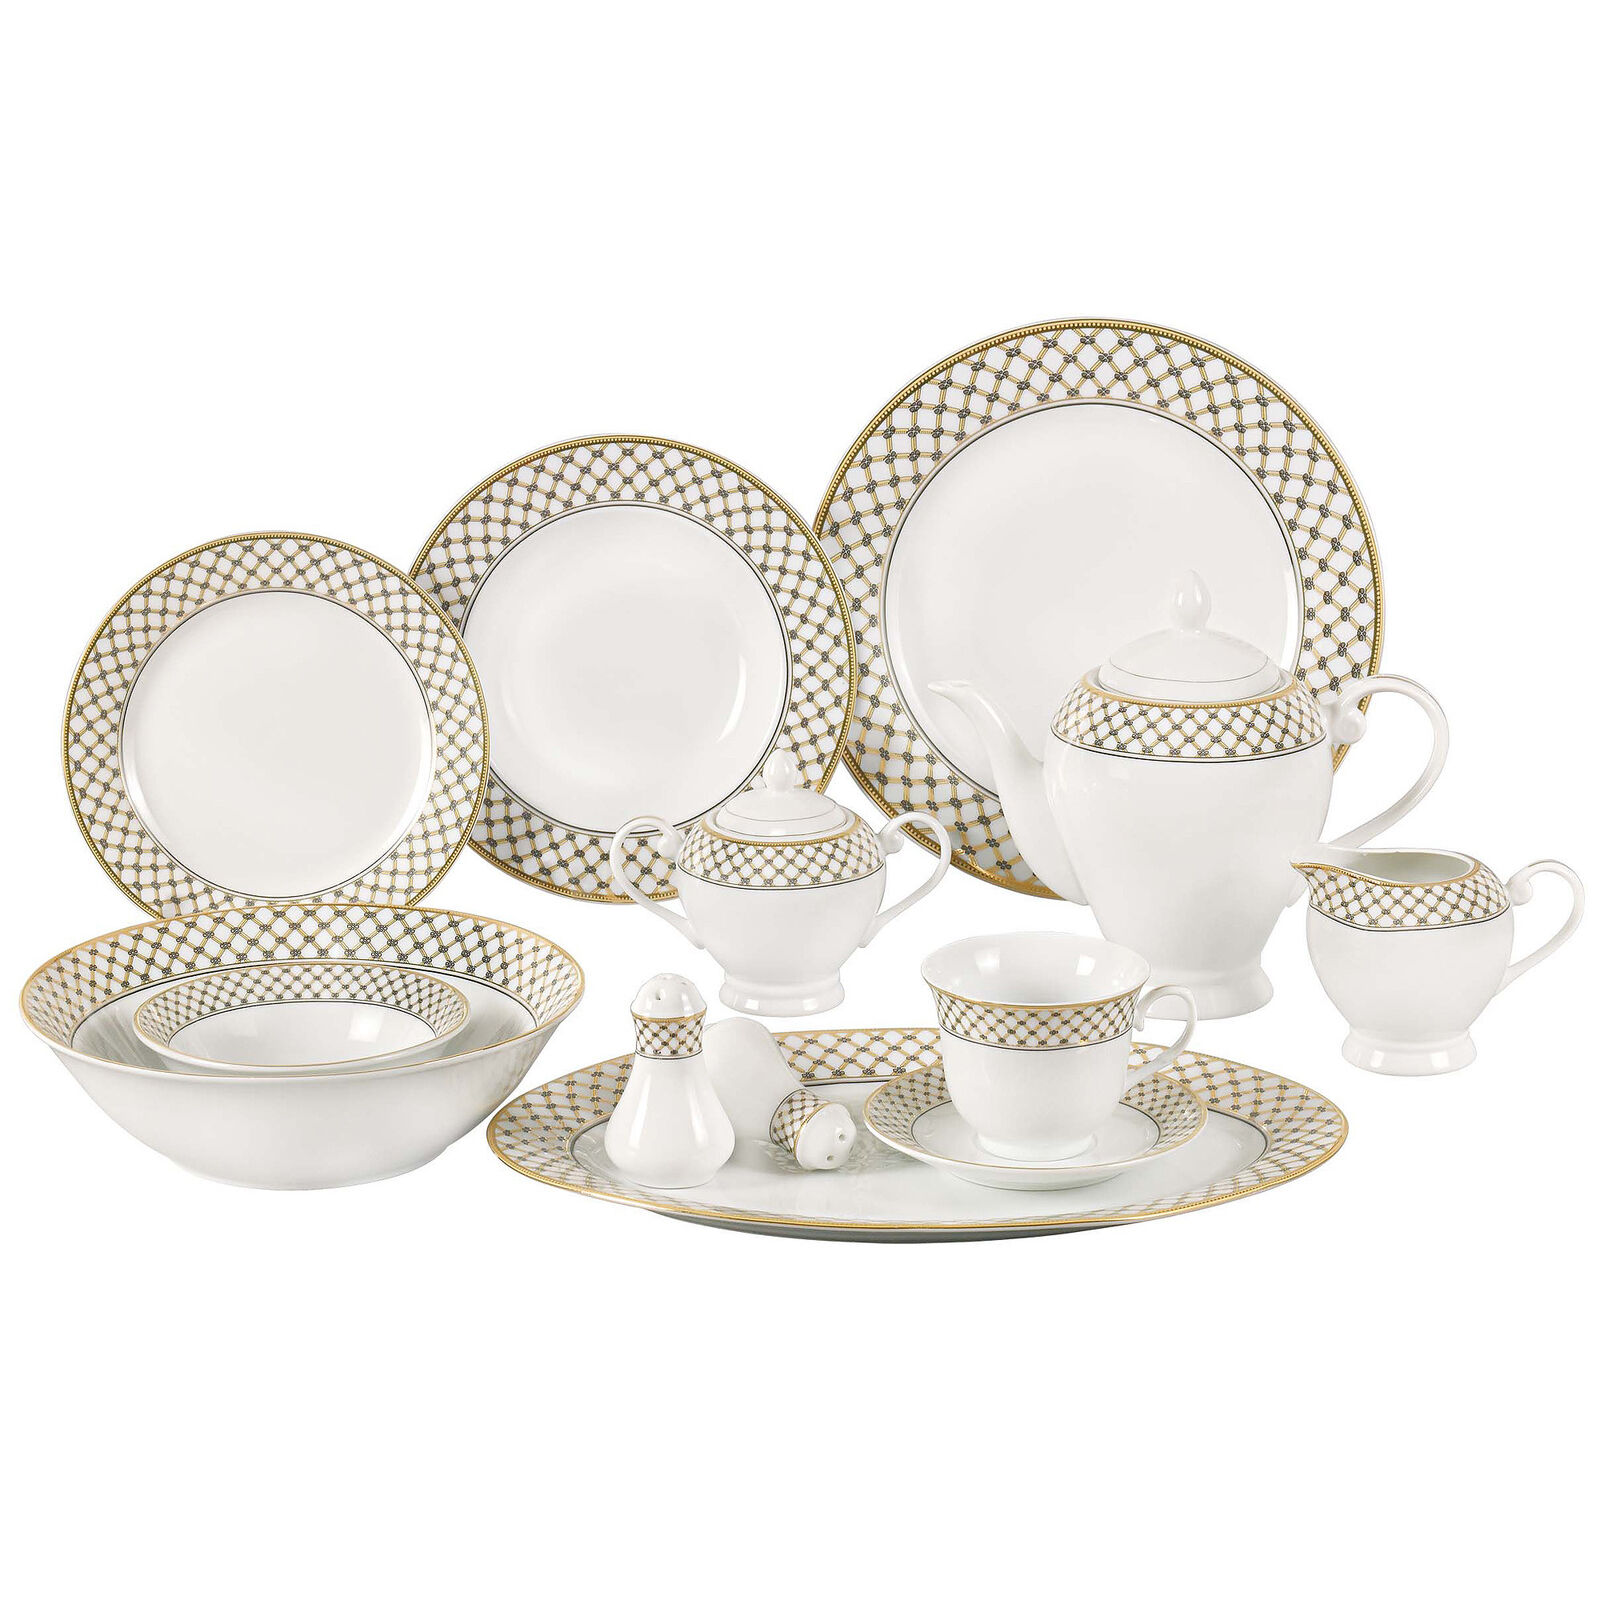 Picture 1 of 1  sc 1 st  eBay & Lorren Home Trends Anabelle 57 Piece Porcelain China Dinnerware Service for 8